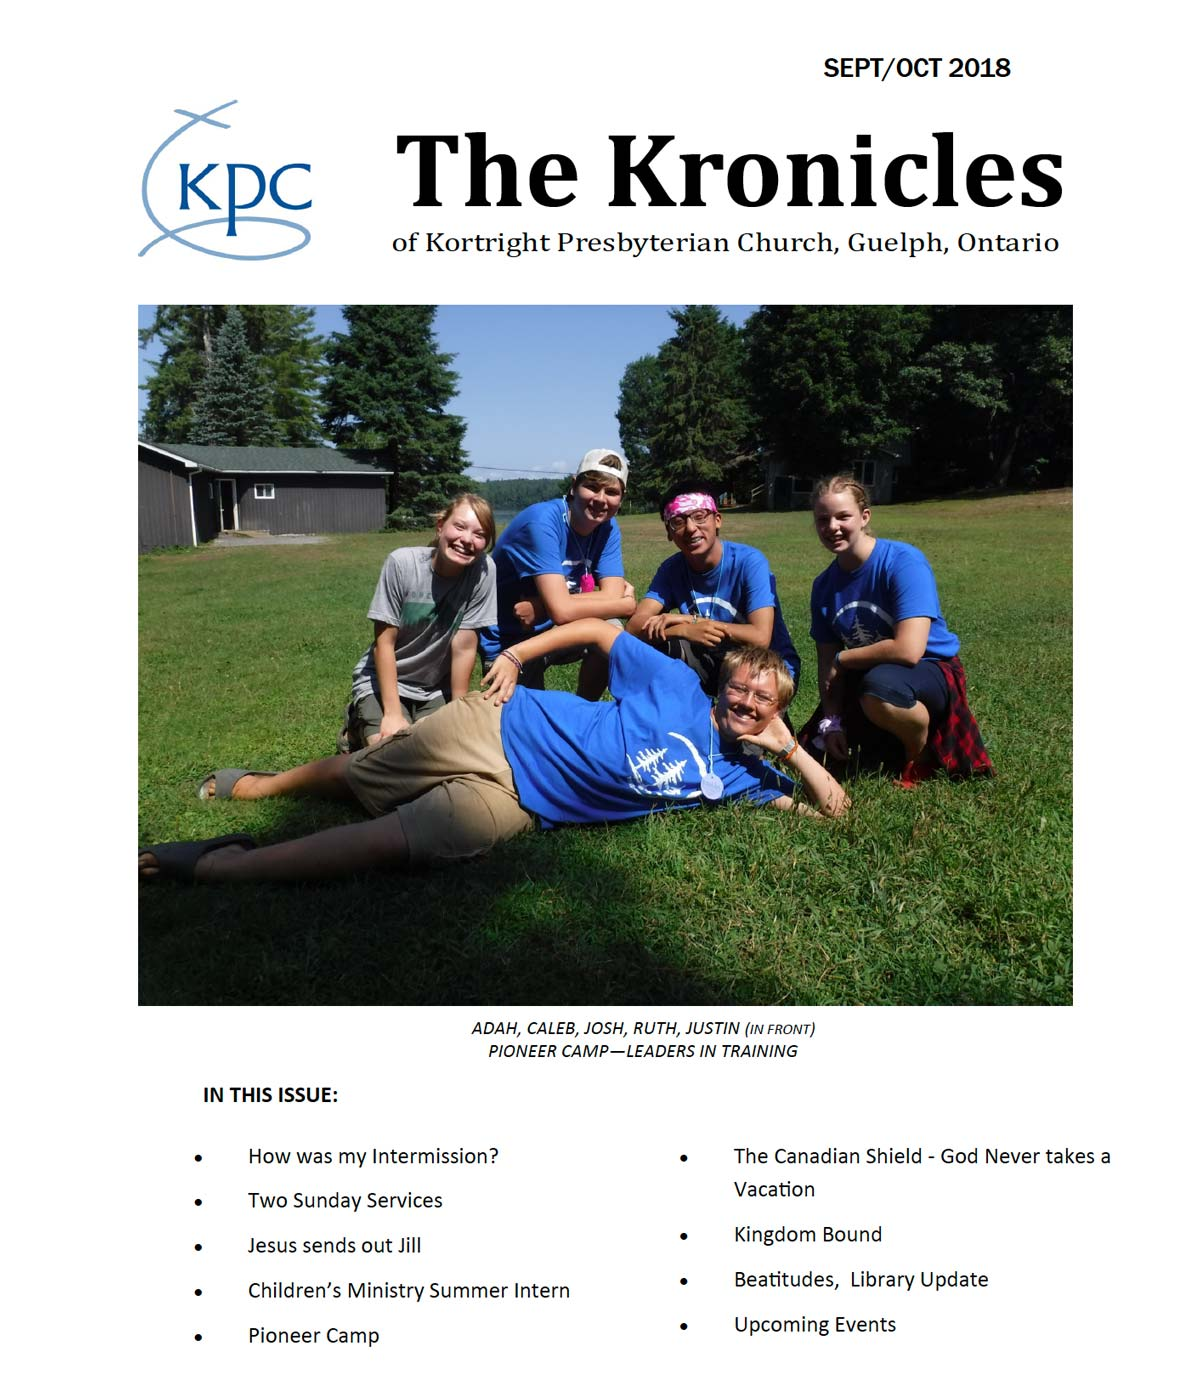 image of the front page of the Kortright Kronicles from September and October 2018